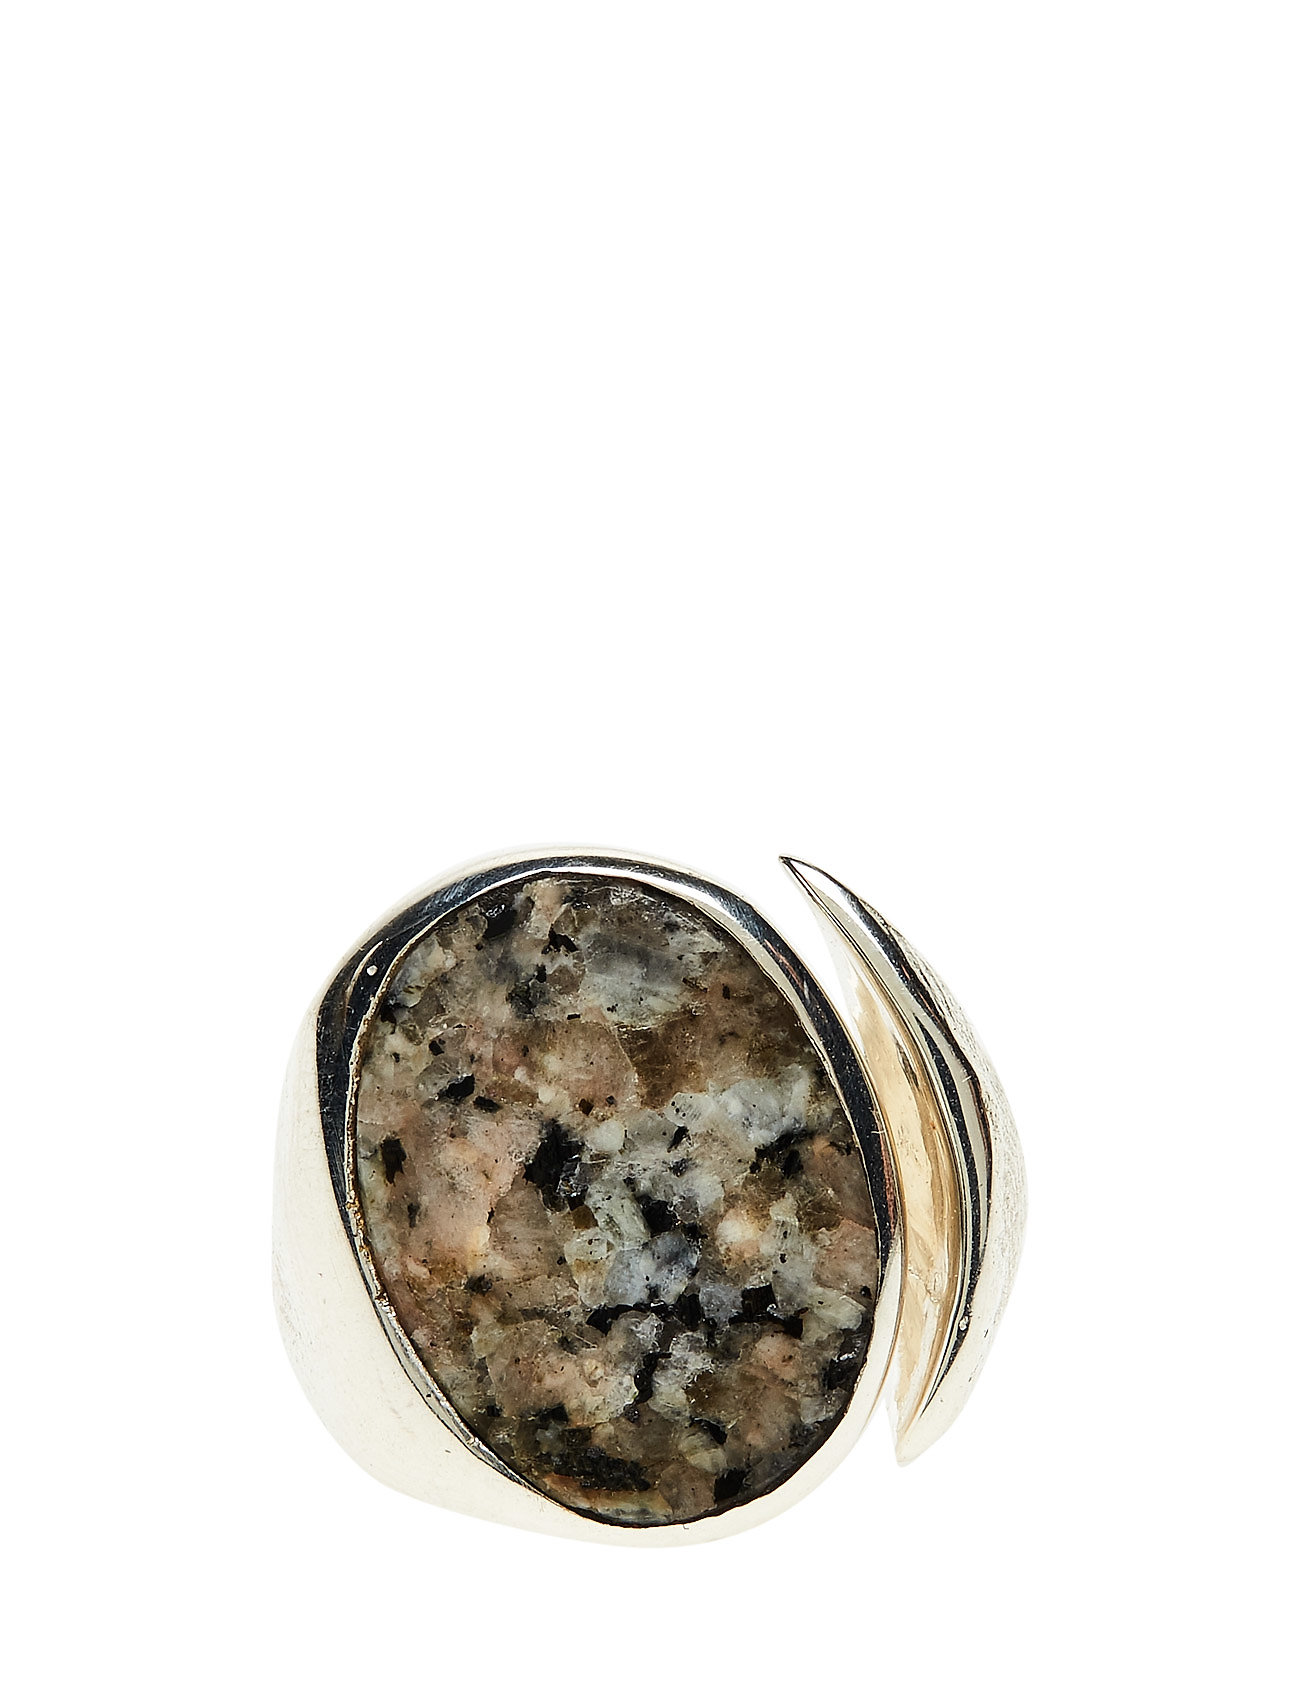 Cornelia Webb MOLDED STONE SIGNET RING - ROUND - S - 21 STERLING SILVER